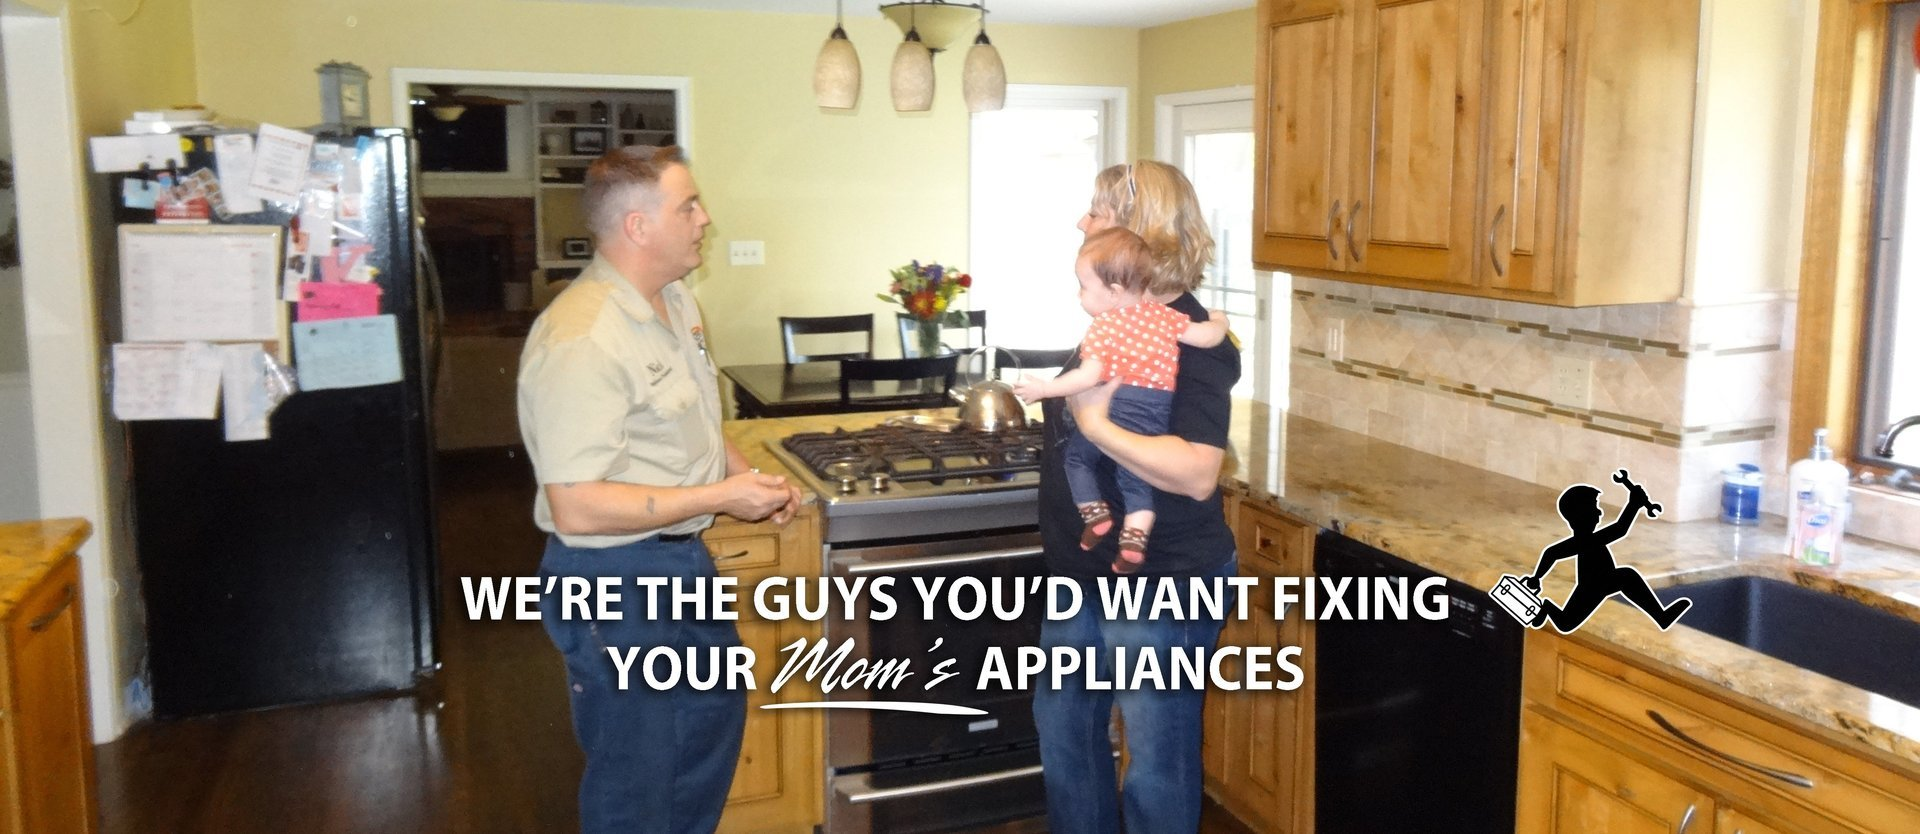 We're The Guys You'd Want Fixing Your Mom's Appliances.  Nutterman fixes you appliances to keep you going!